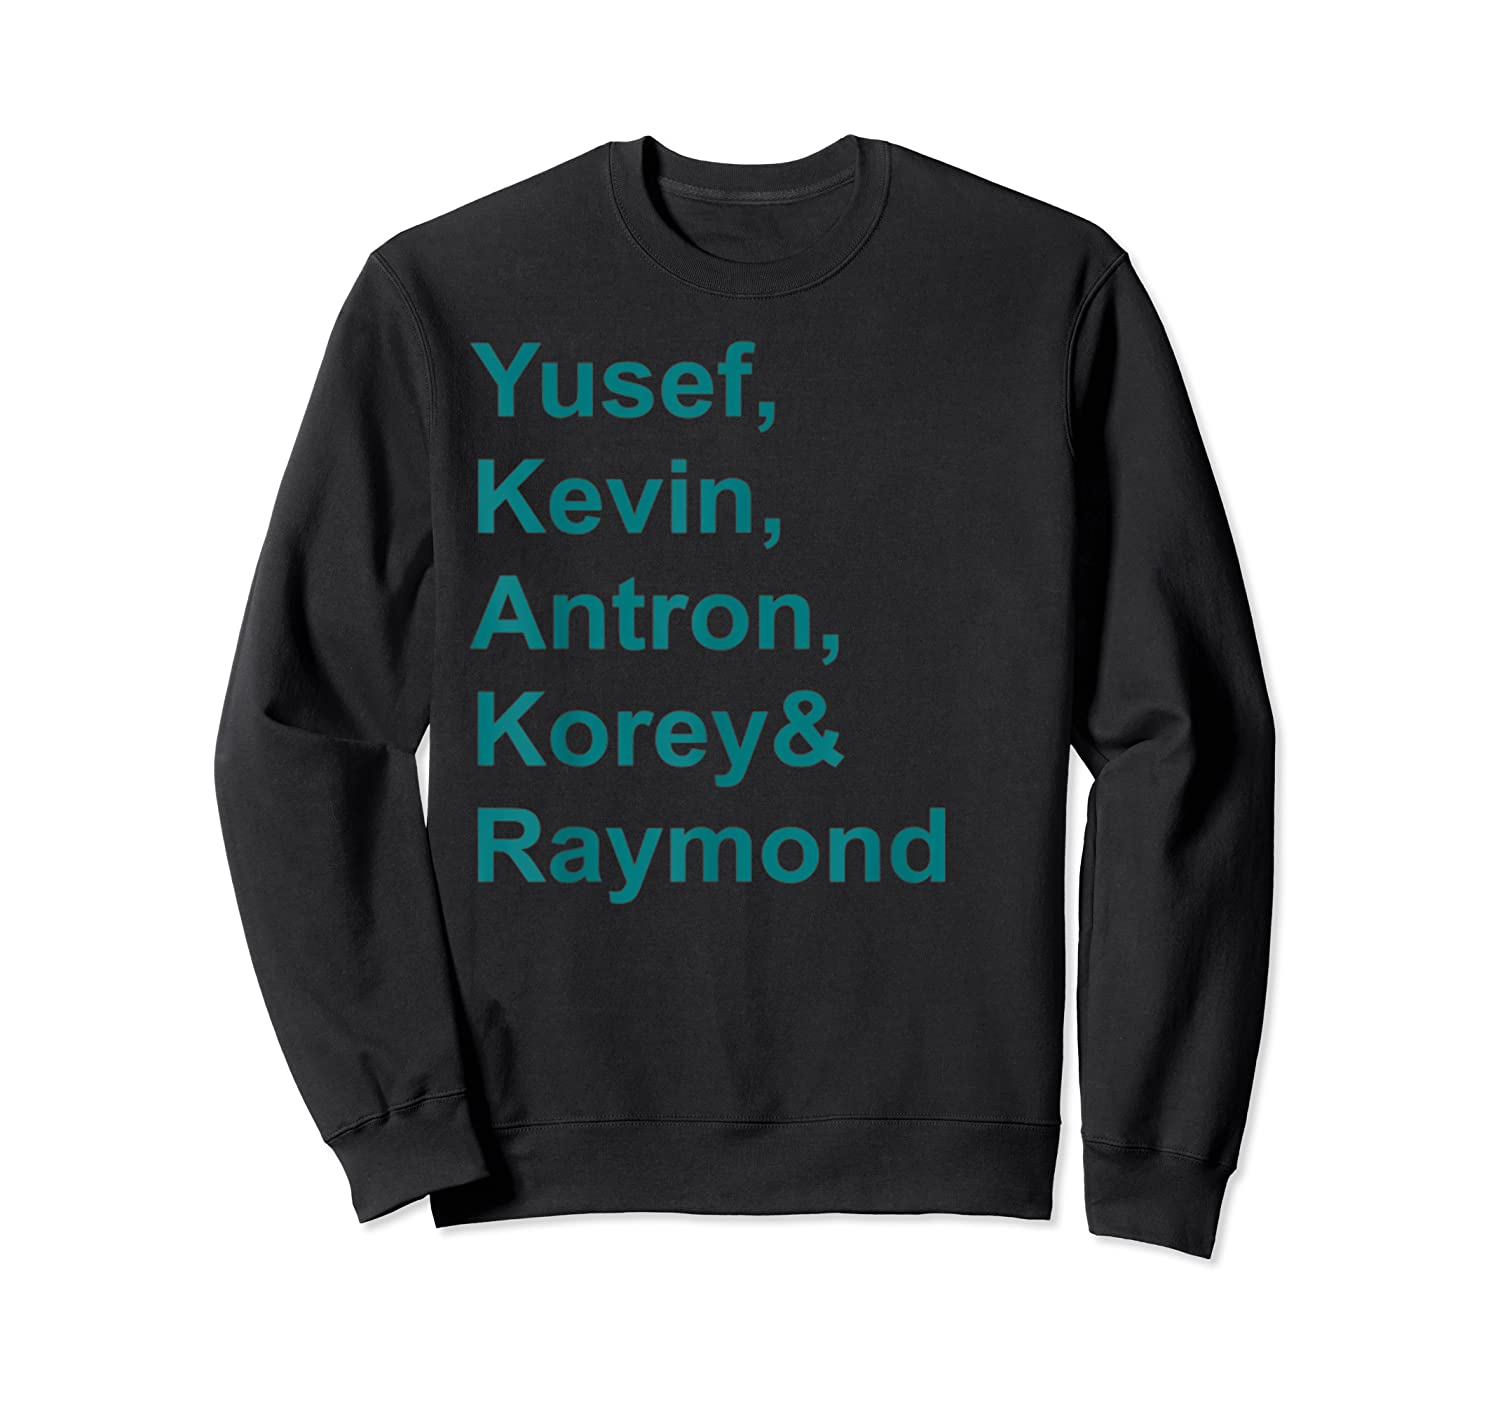 Central Park 5 T-shirt Central Park 5 Real Story Tshirt Crewneck Sweater